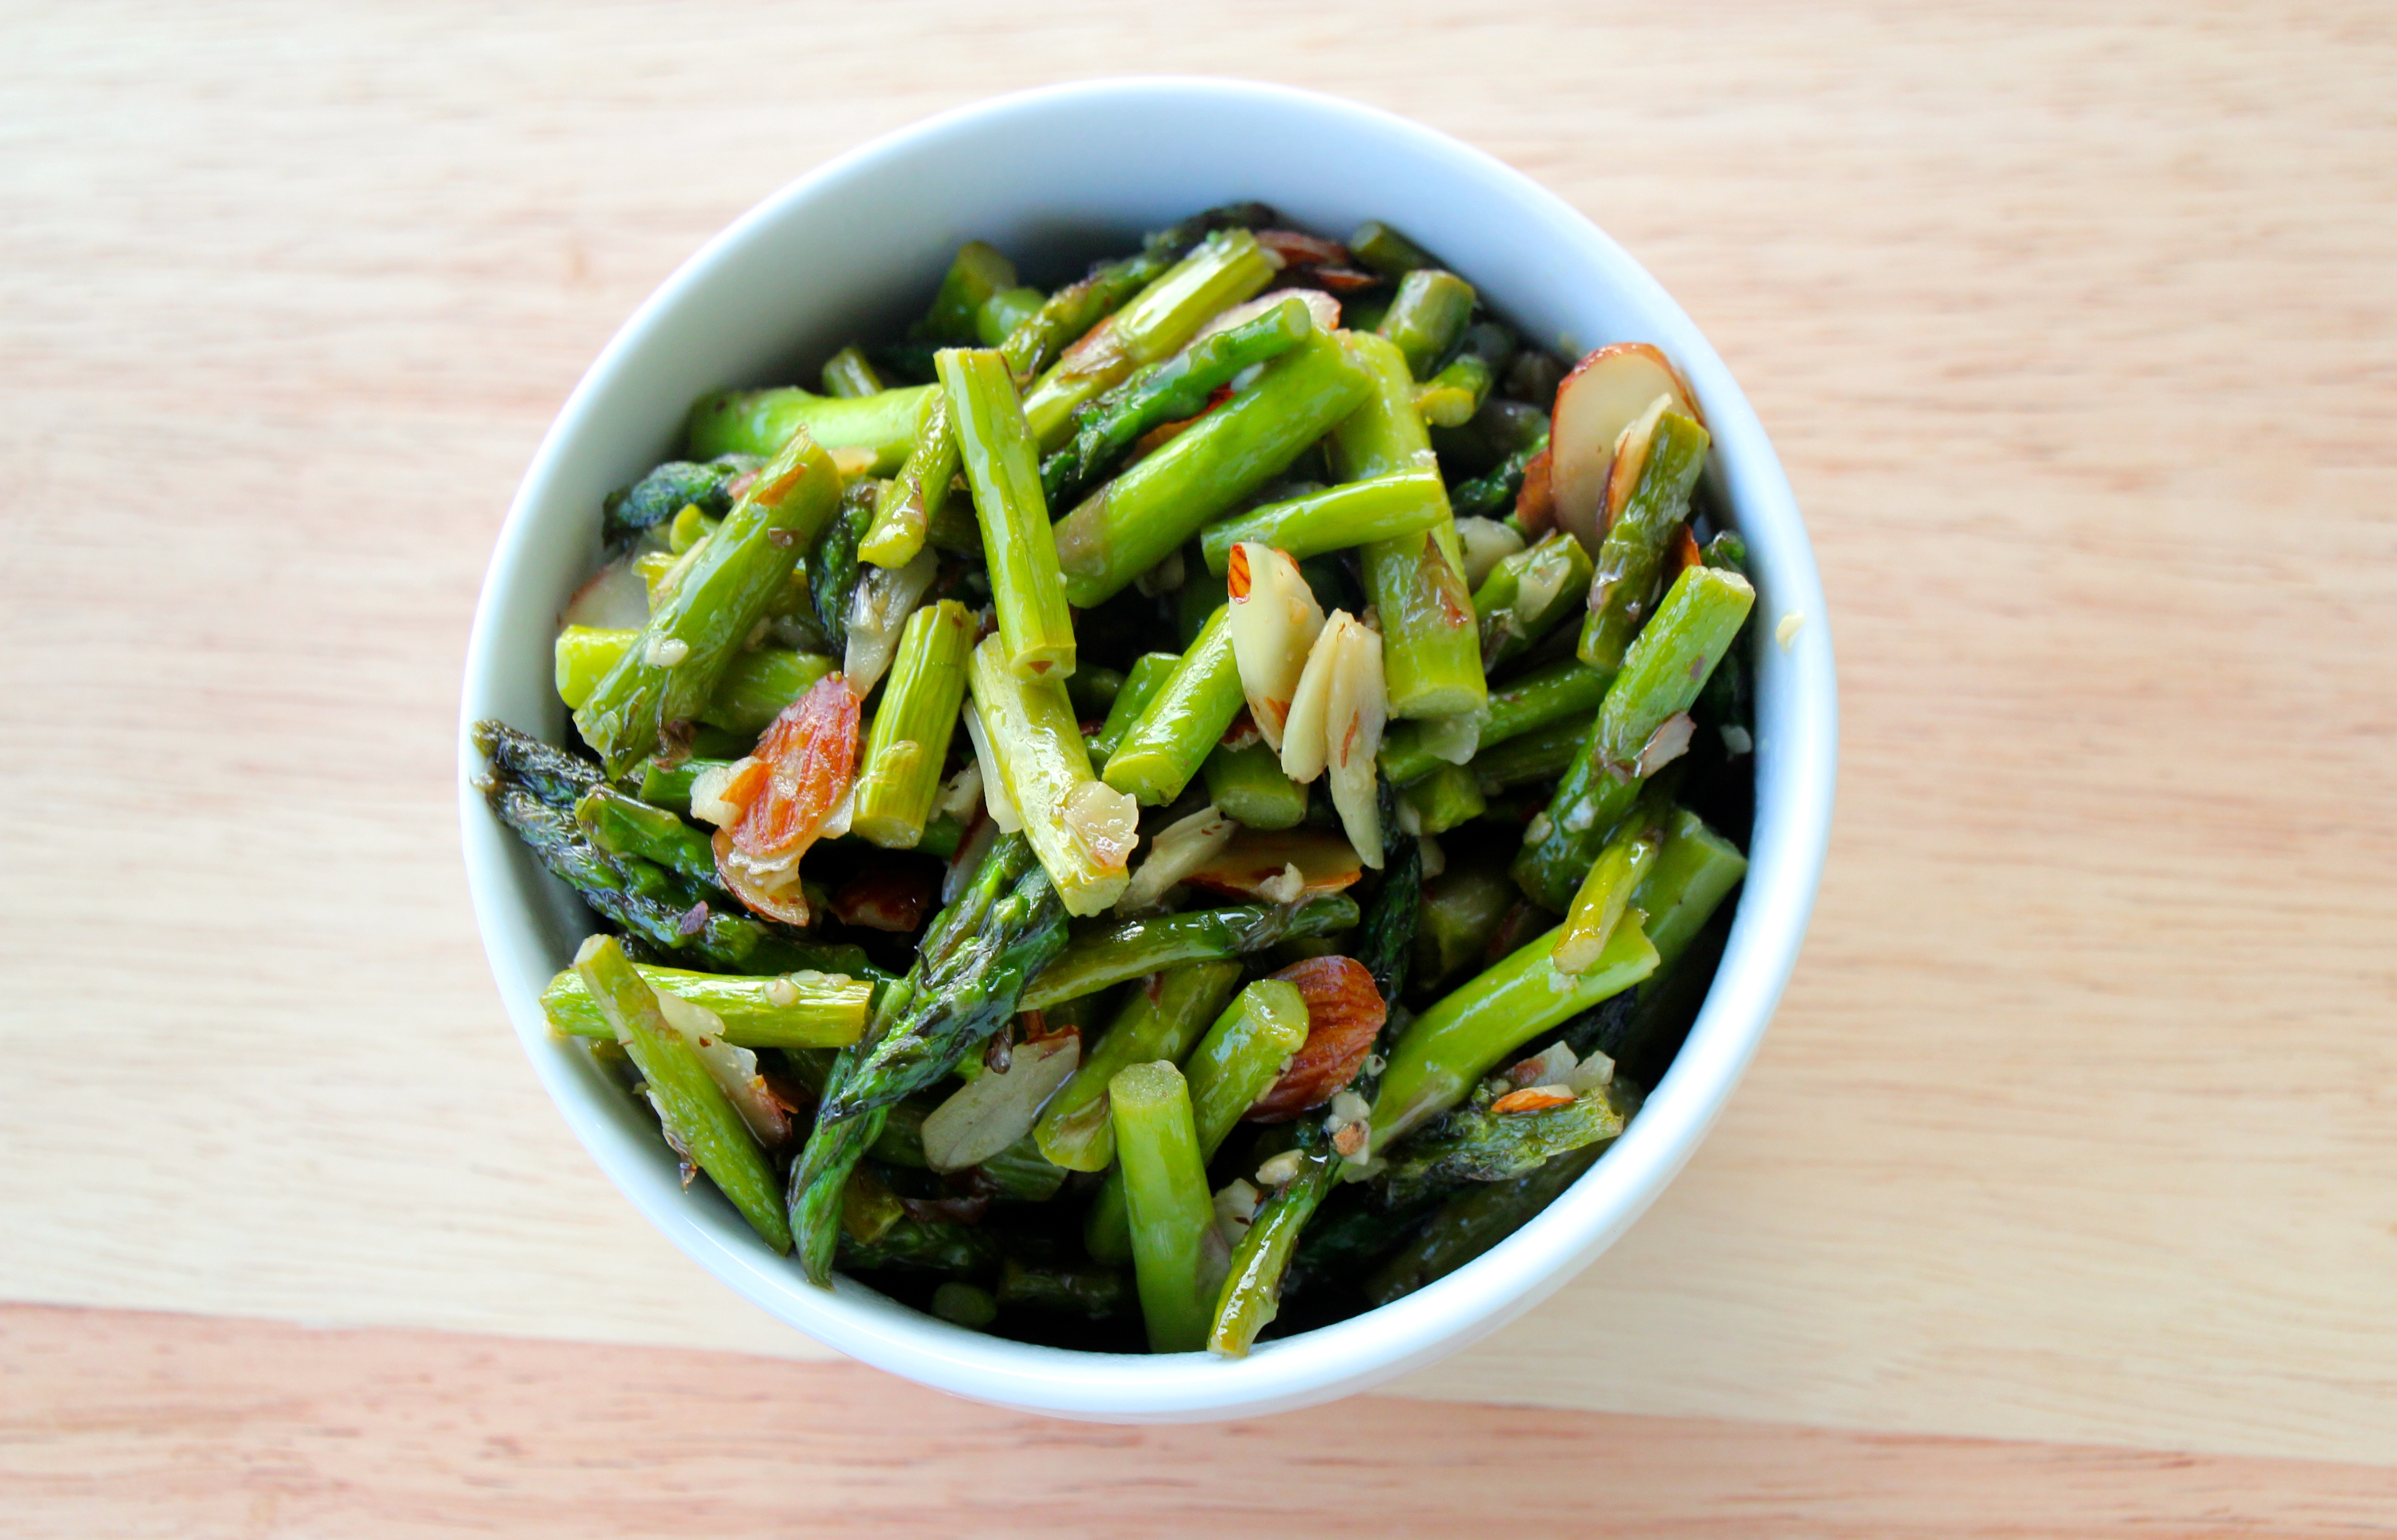 Need a new side dish? This Roasted Asparagus Salad is my favorite way to eat asparagus!